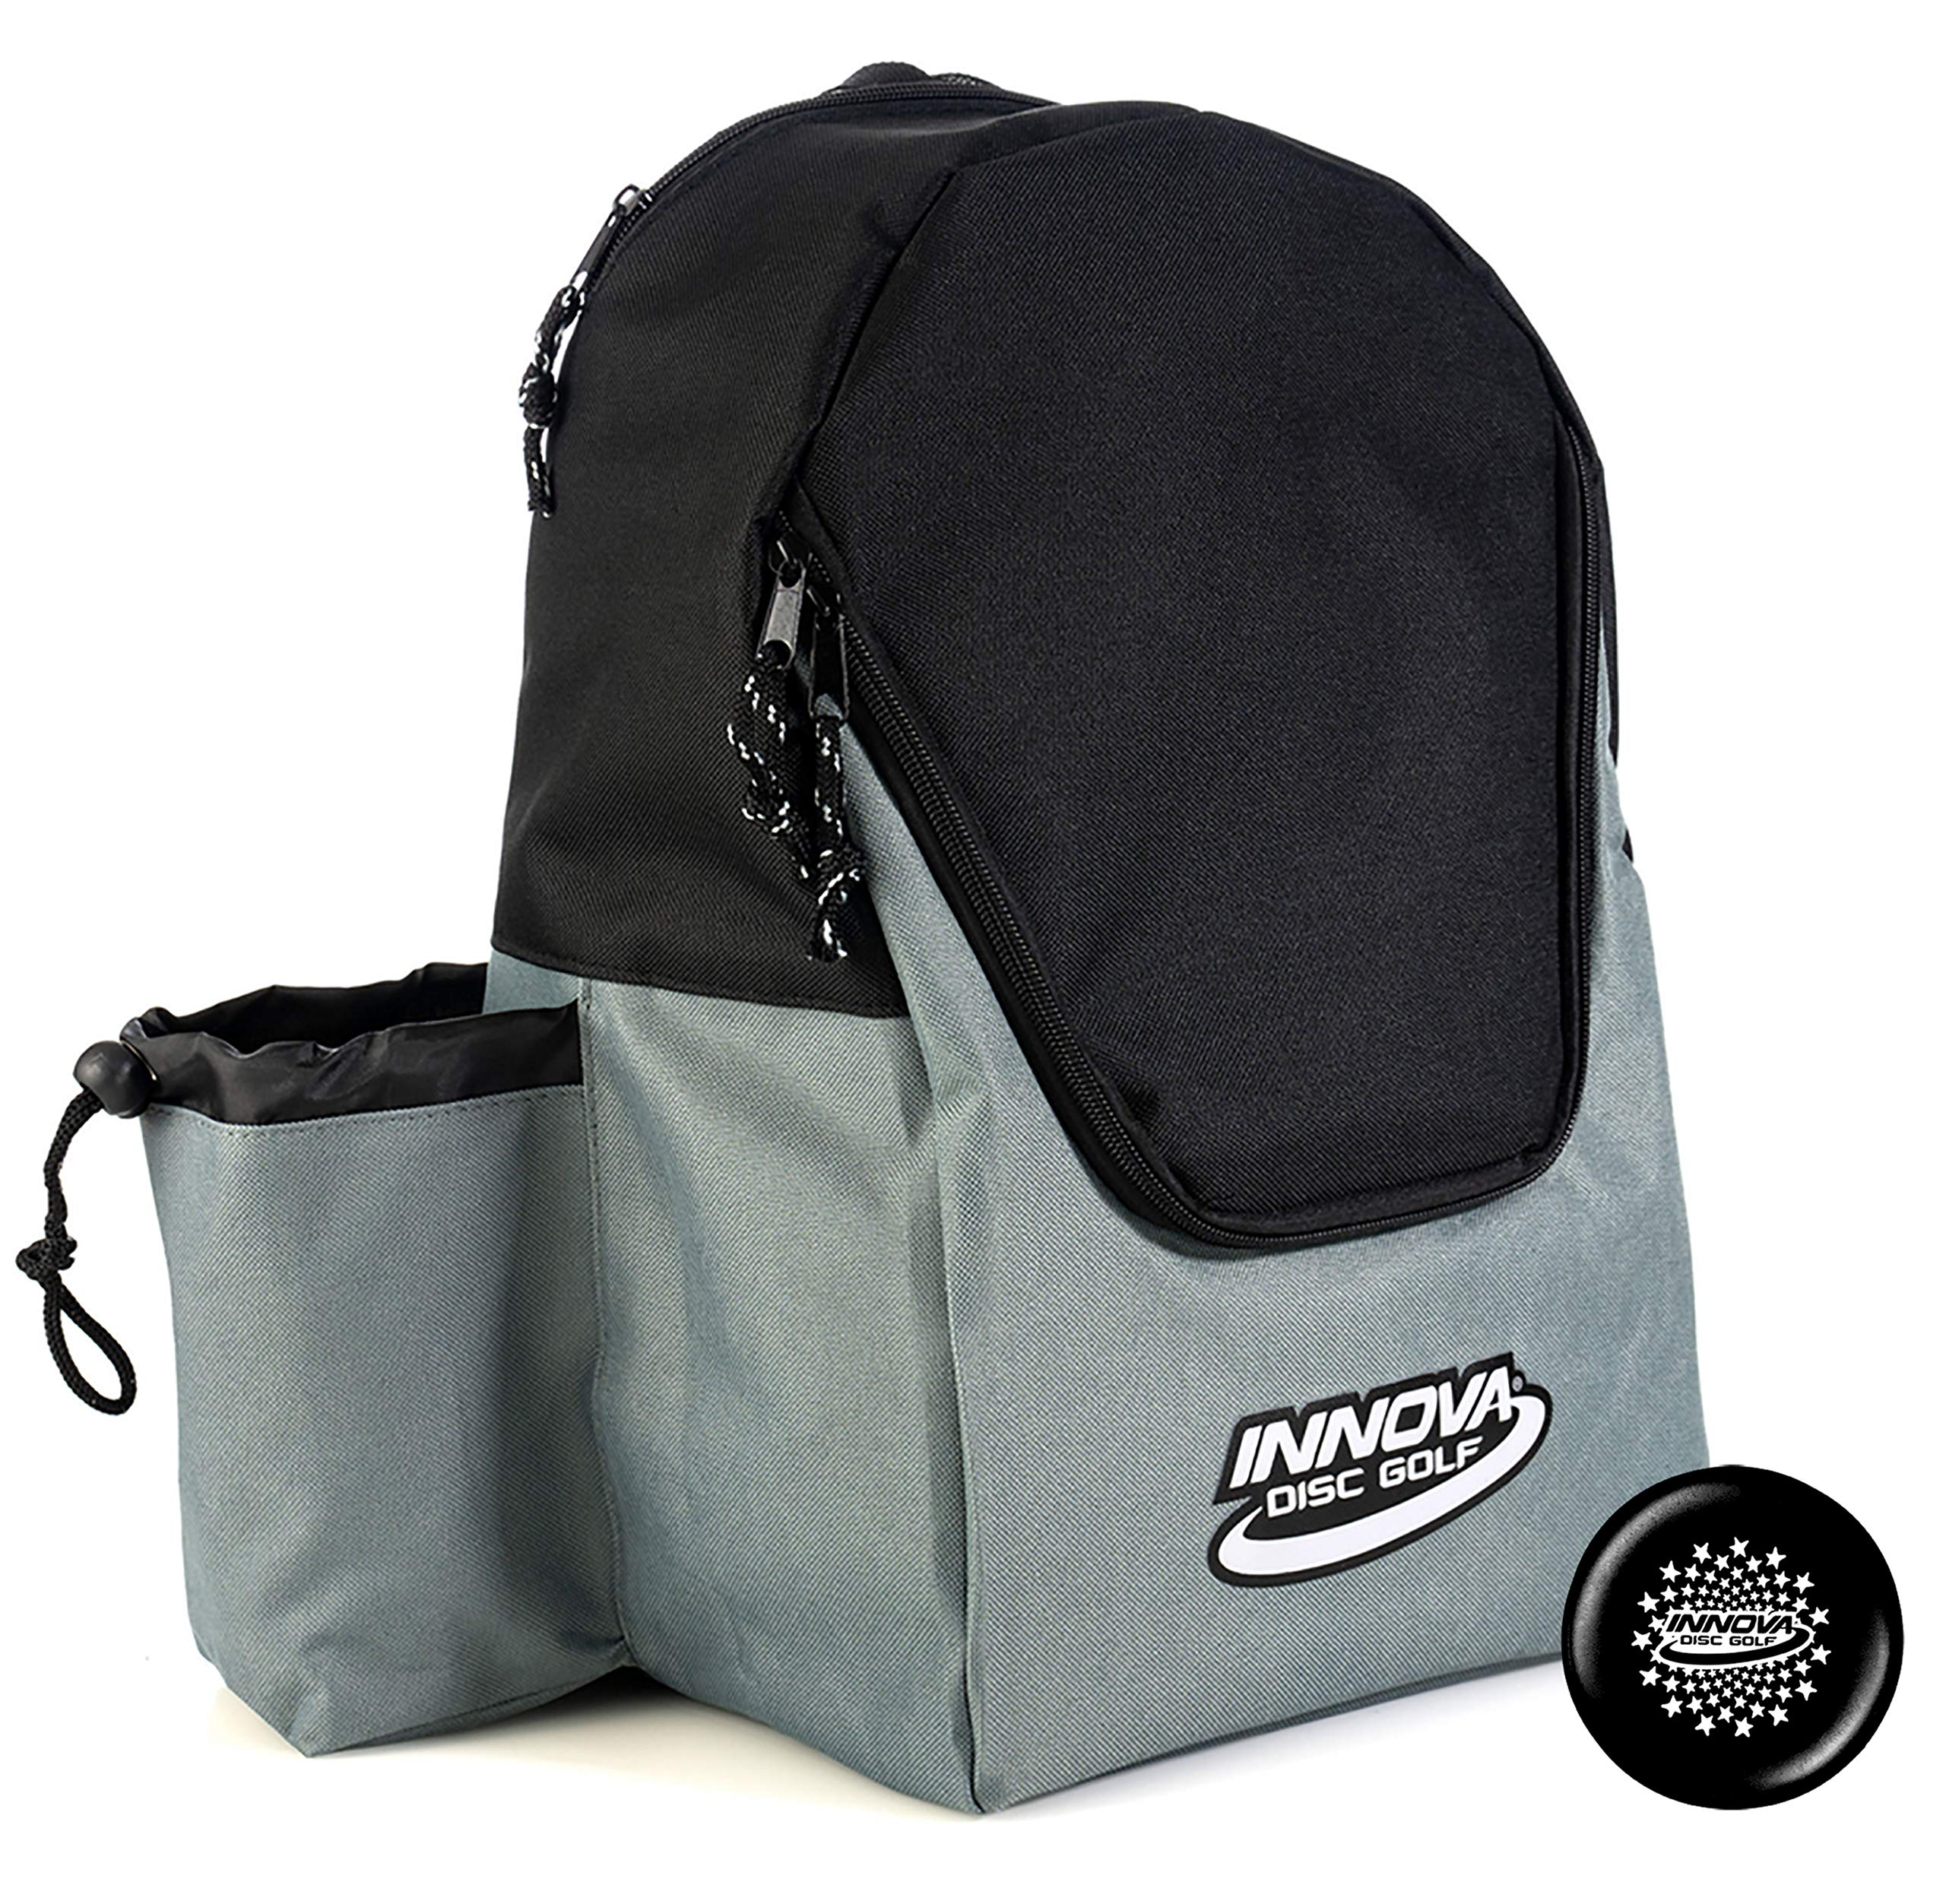 Innova Discover Pack Backpack Disc Golf Bag - Holds 15 Discs - Lightweight Easy to Carry - Includes Innova Limited Edition Stars Mini Marker (Black/Gray) by Innova Discs